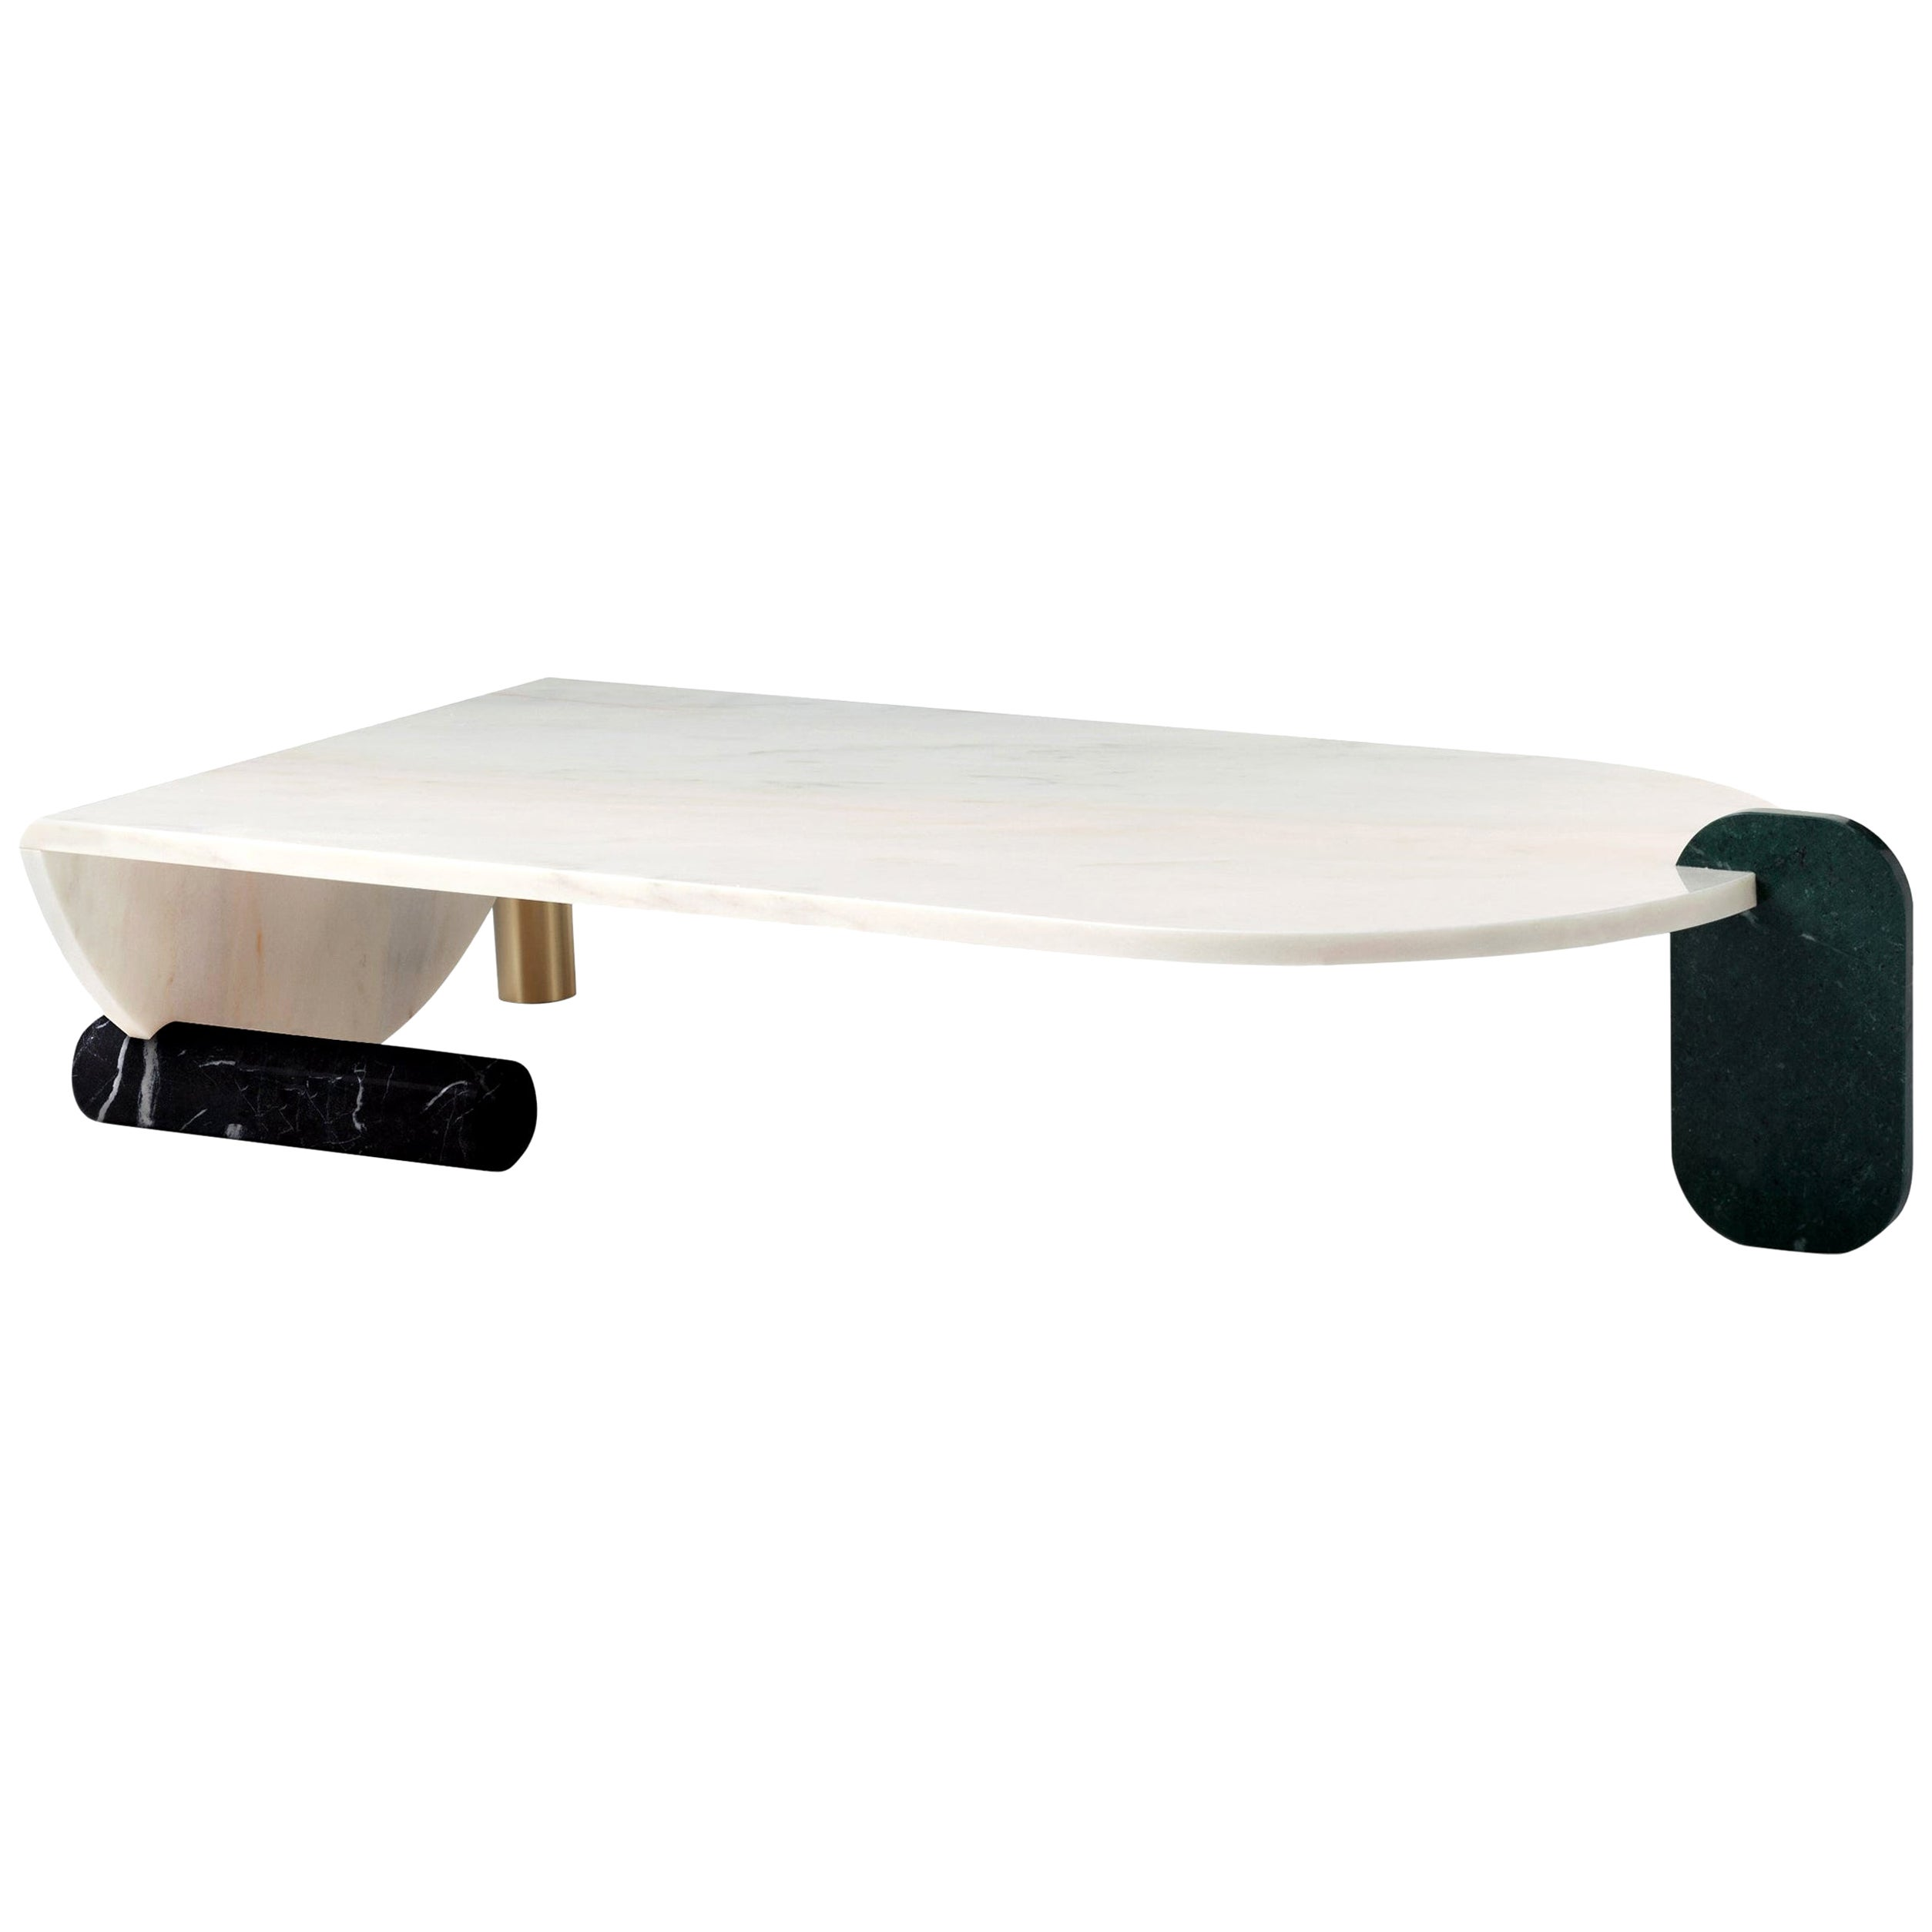 Marble Coffee Table by Dooq